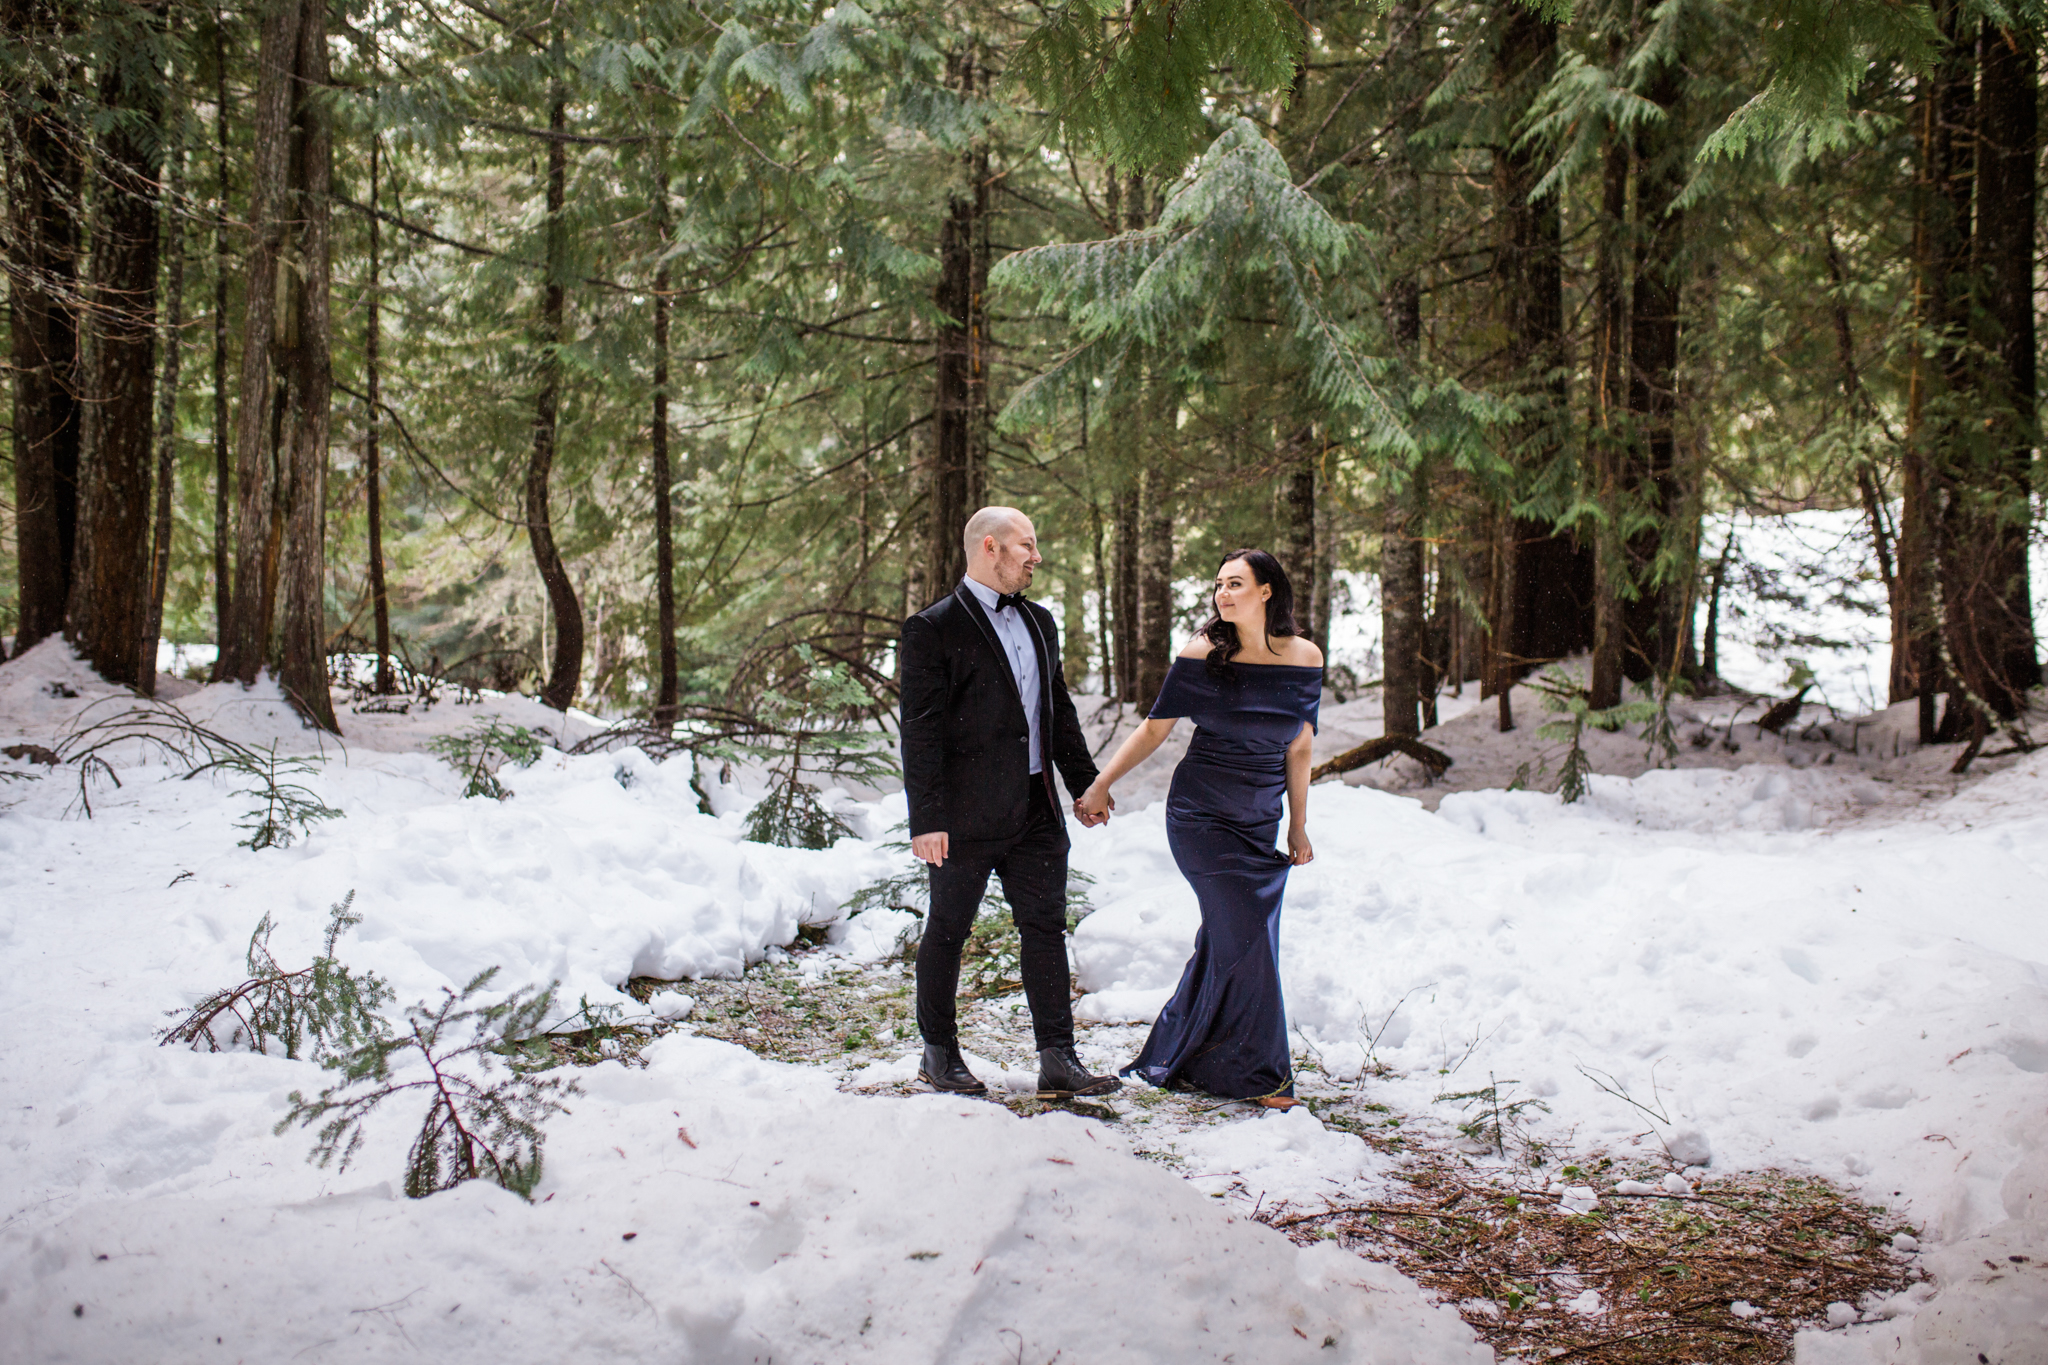 Trillium Lake Mt Hood, Oregon Romantic Snowy Engagement Session.jpg